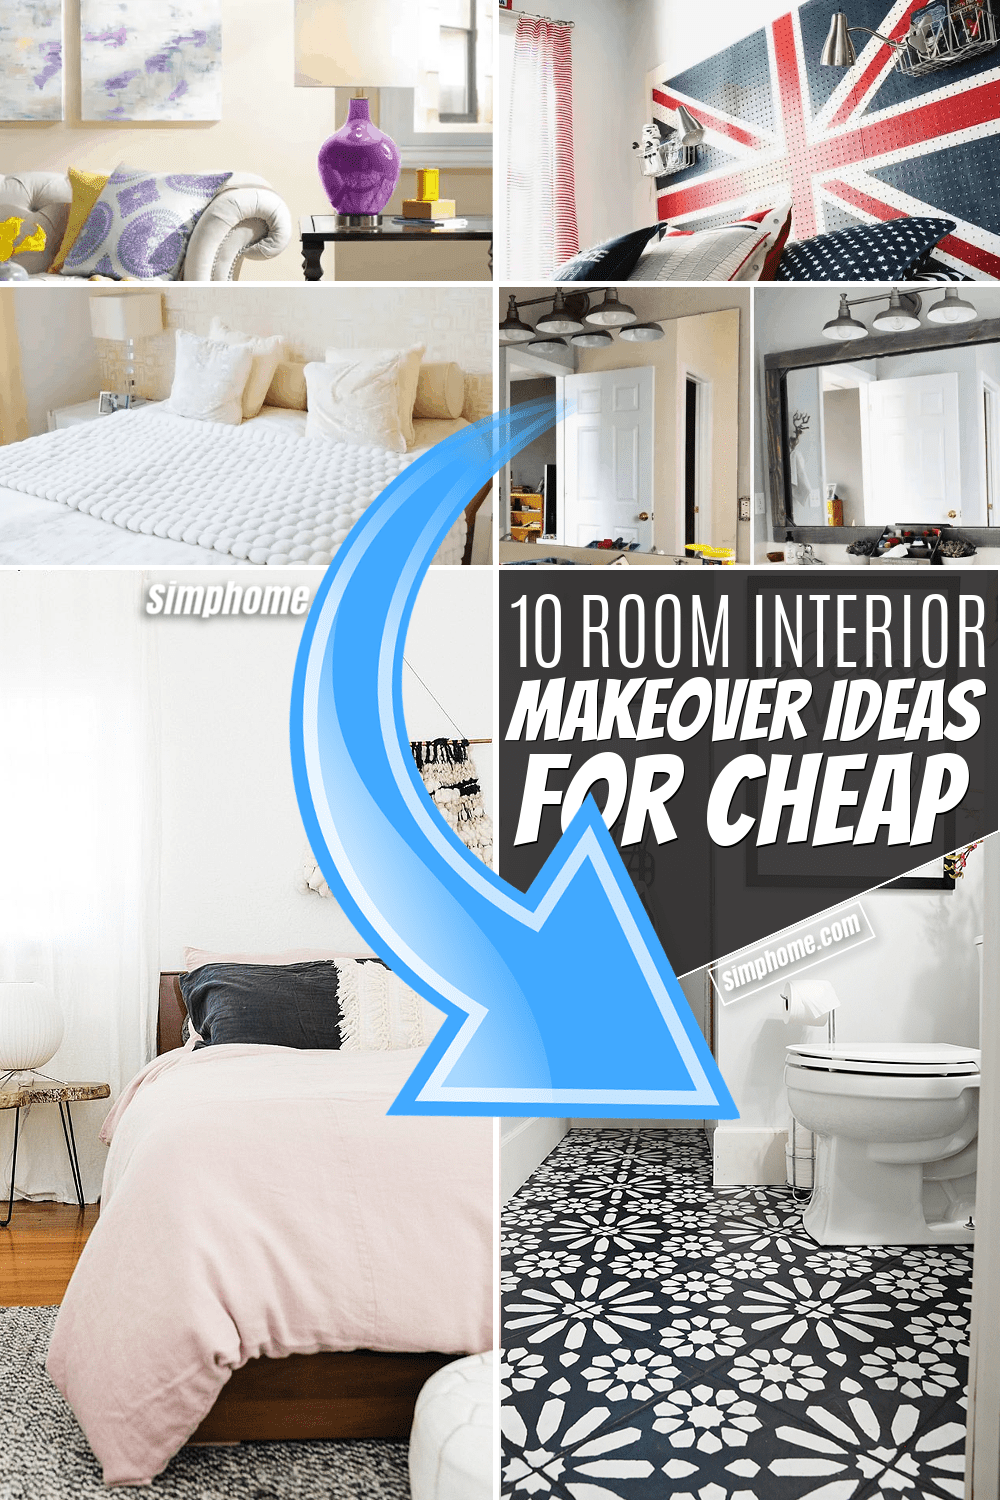 Simphome.com 10 Room Makeover Ideas for Cheap Featured image